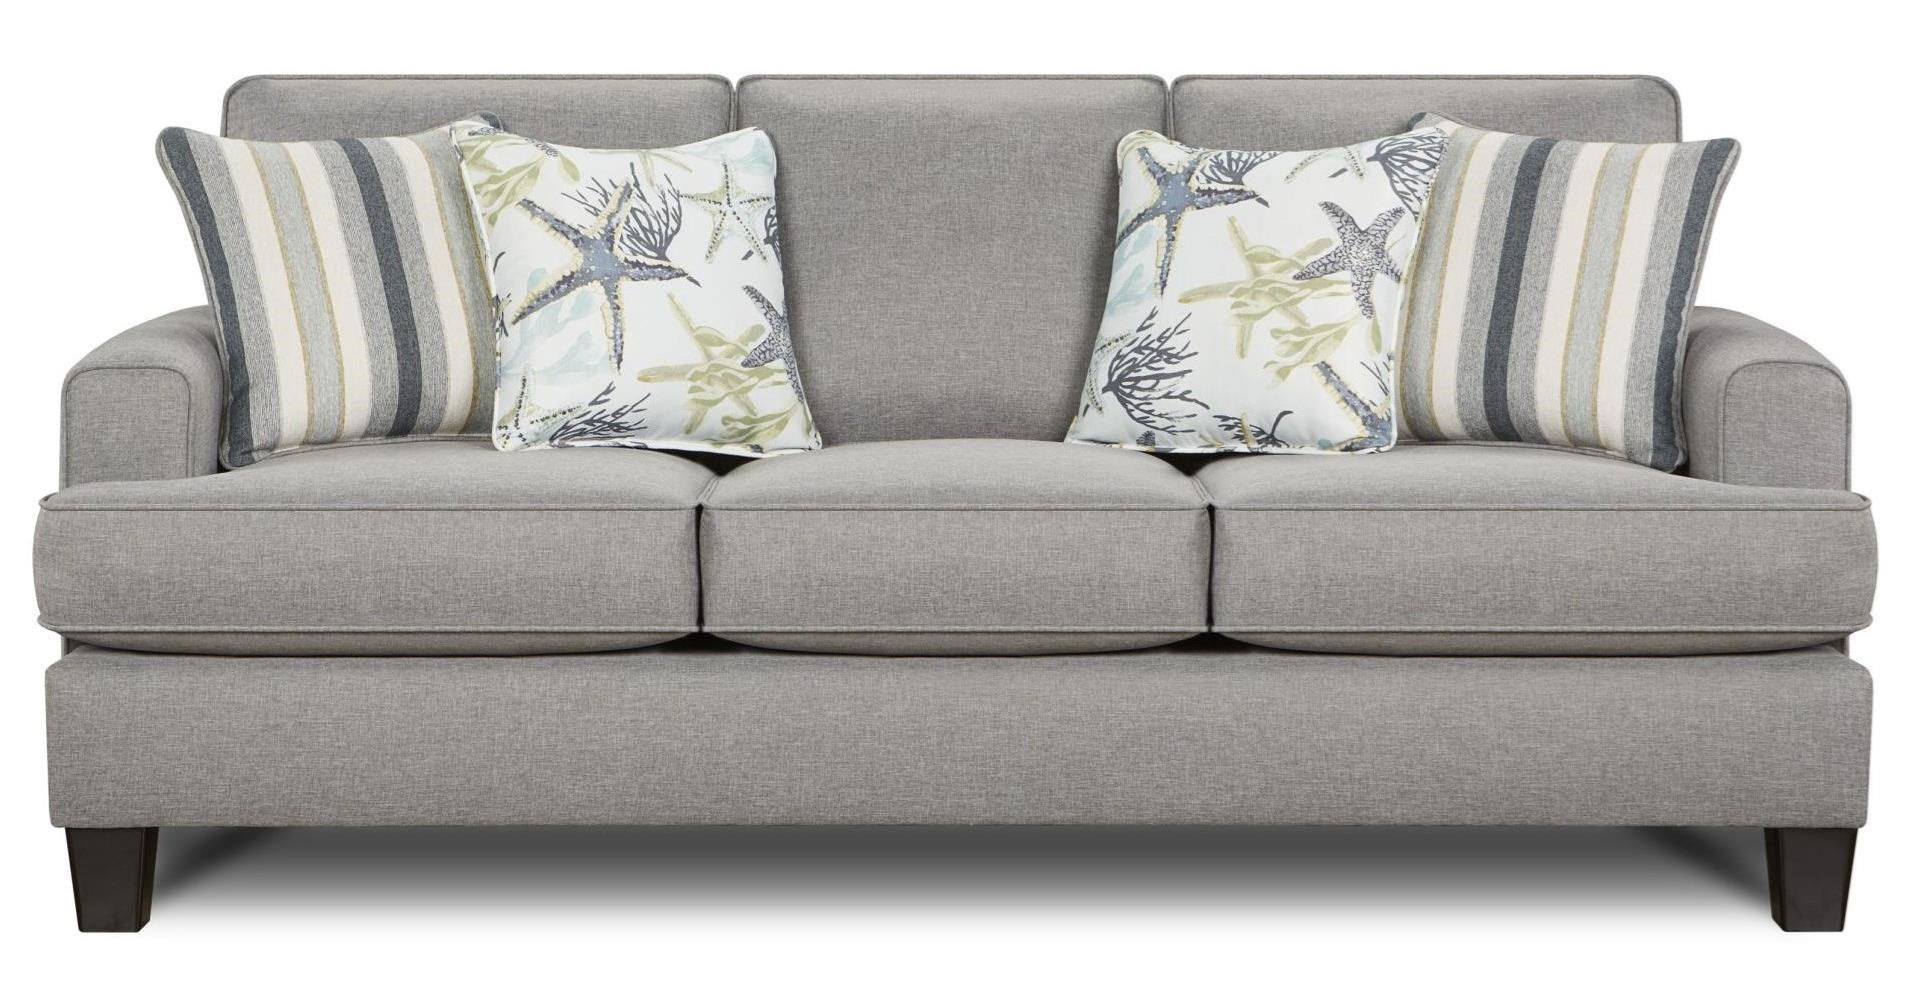 Sofa Foam Leeds 2600 Contemporary Sofa With Small Track Arms By Fusion Furniture At Standard Furniture